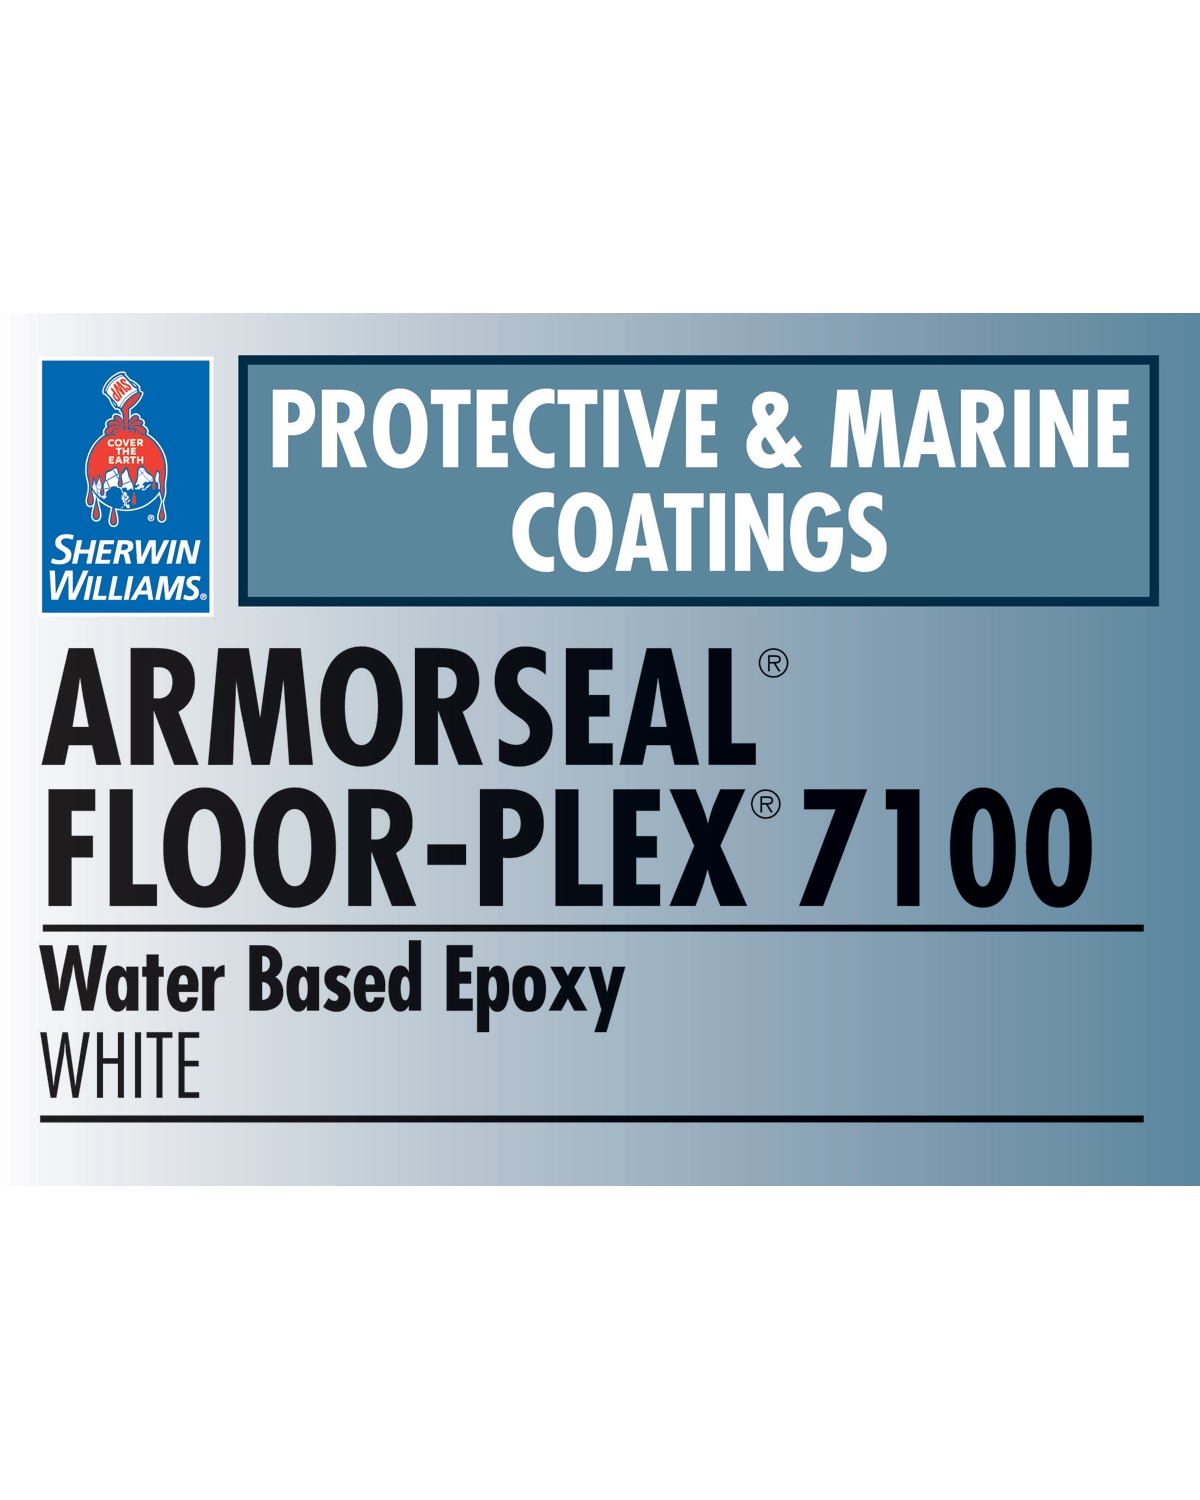 ArmorSeal® Floor-Plex™ 7100 Water Based Epoxy